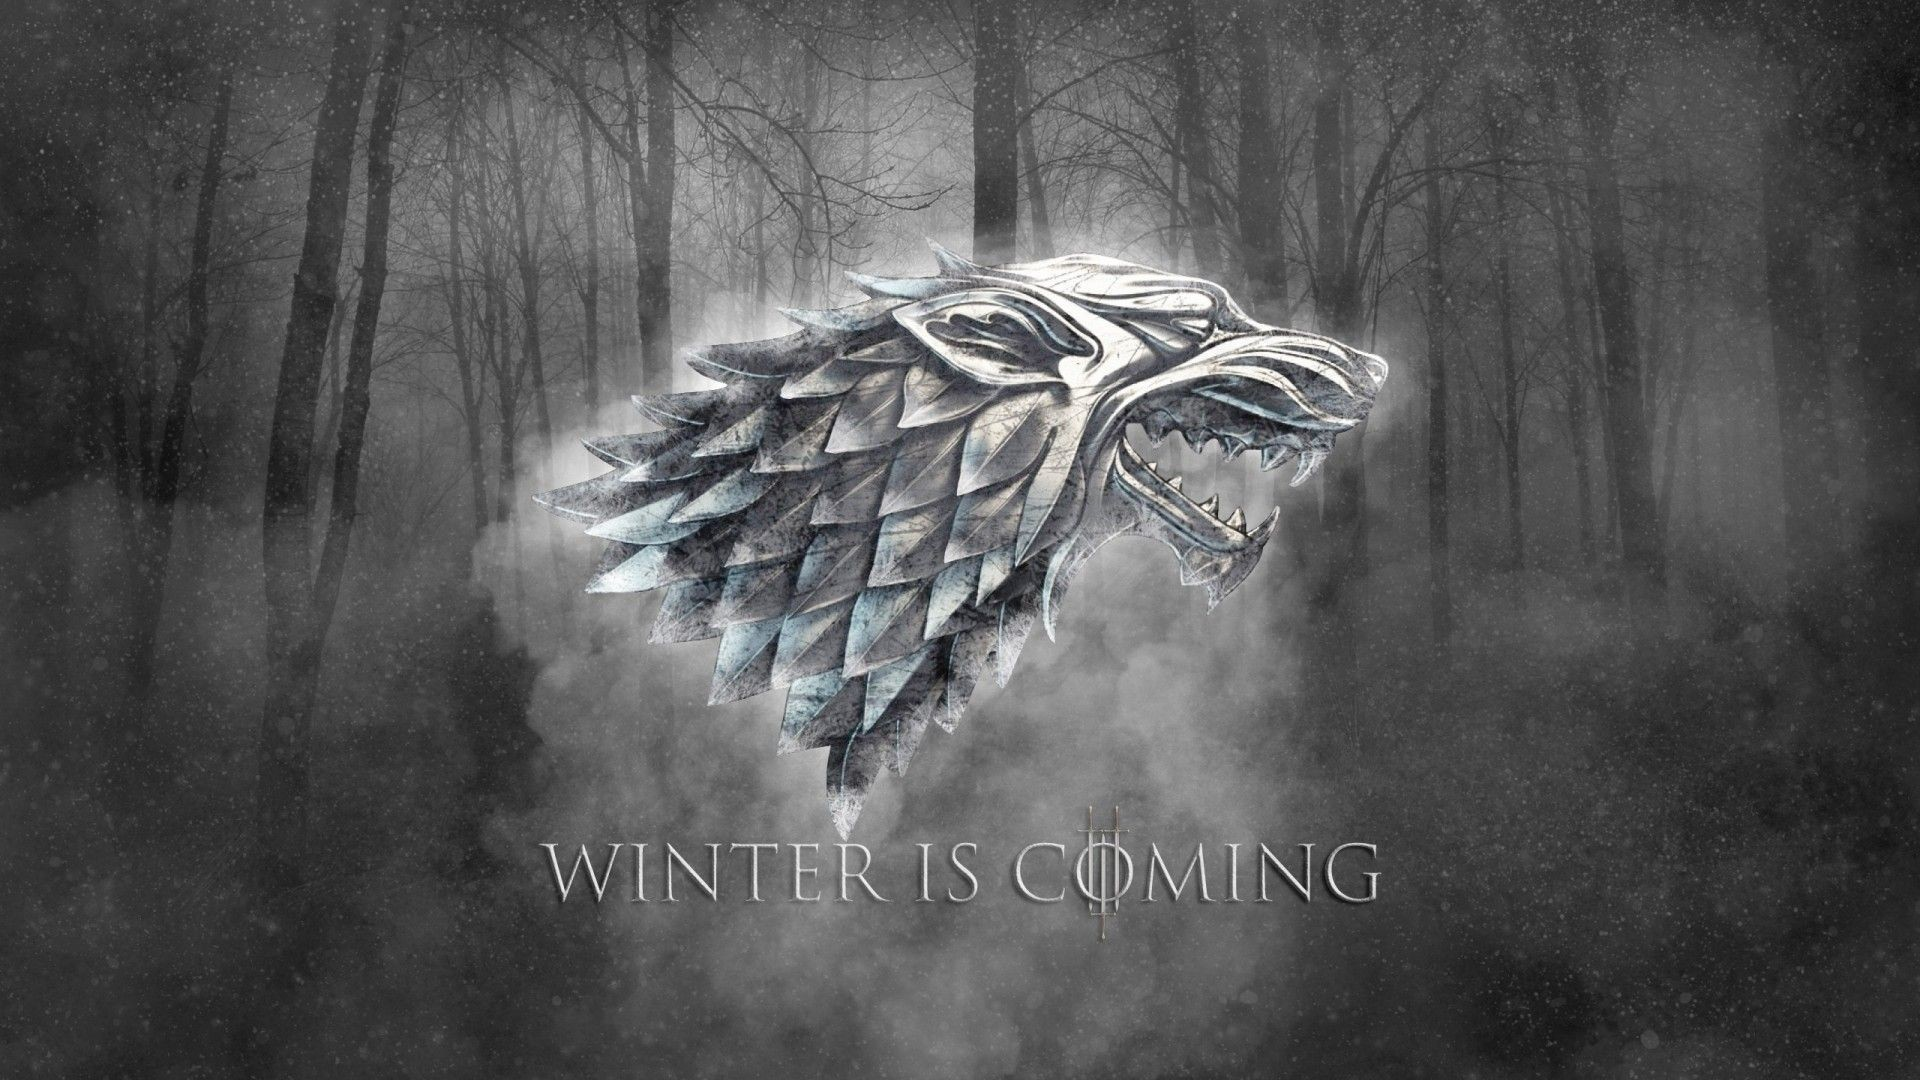 Winter Is Coming Wallpapers – Wallpaper Cave | Free Wallpapers | Pinterest  | Wallpaper